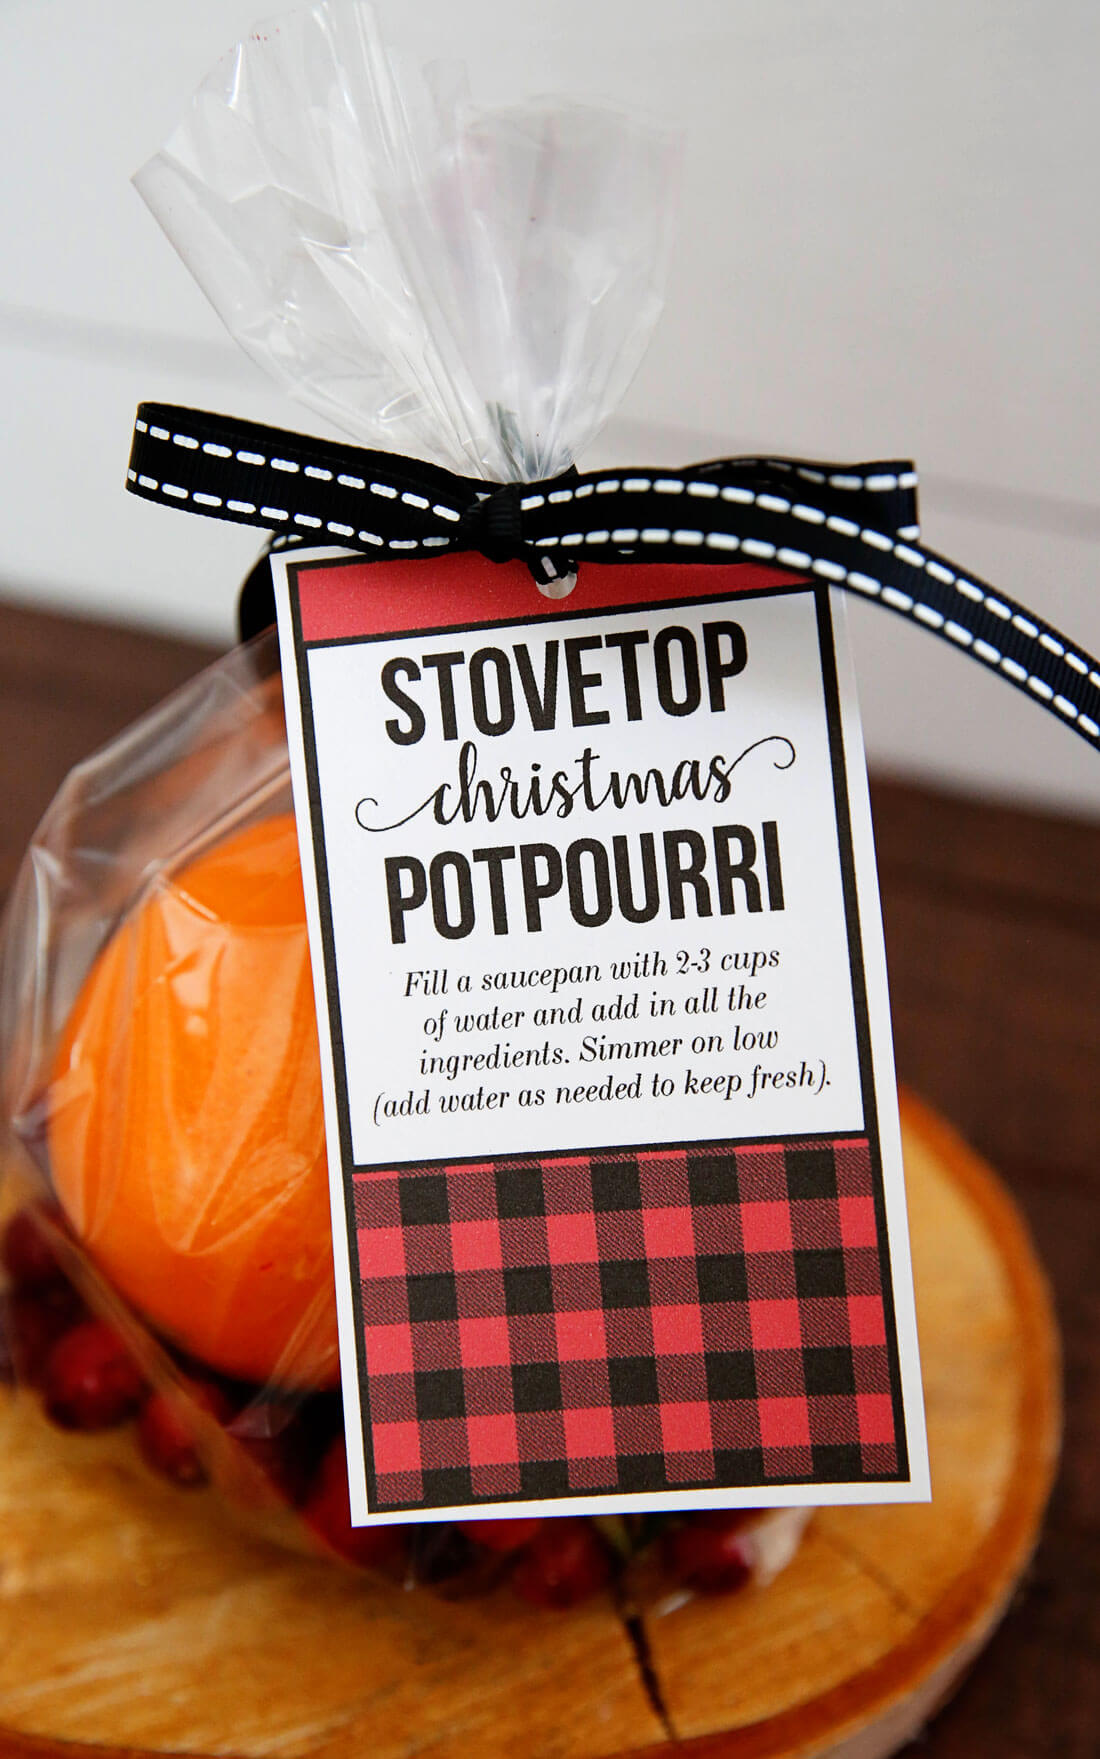 Stovetop Christmas Potpourri - make this and your house will smell AMAZING! It's like Christmas in a pot. from www.thirtyhandmadedays.com